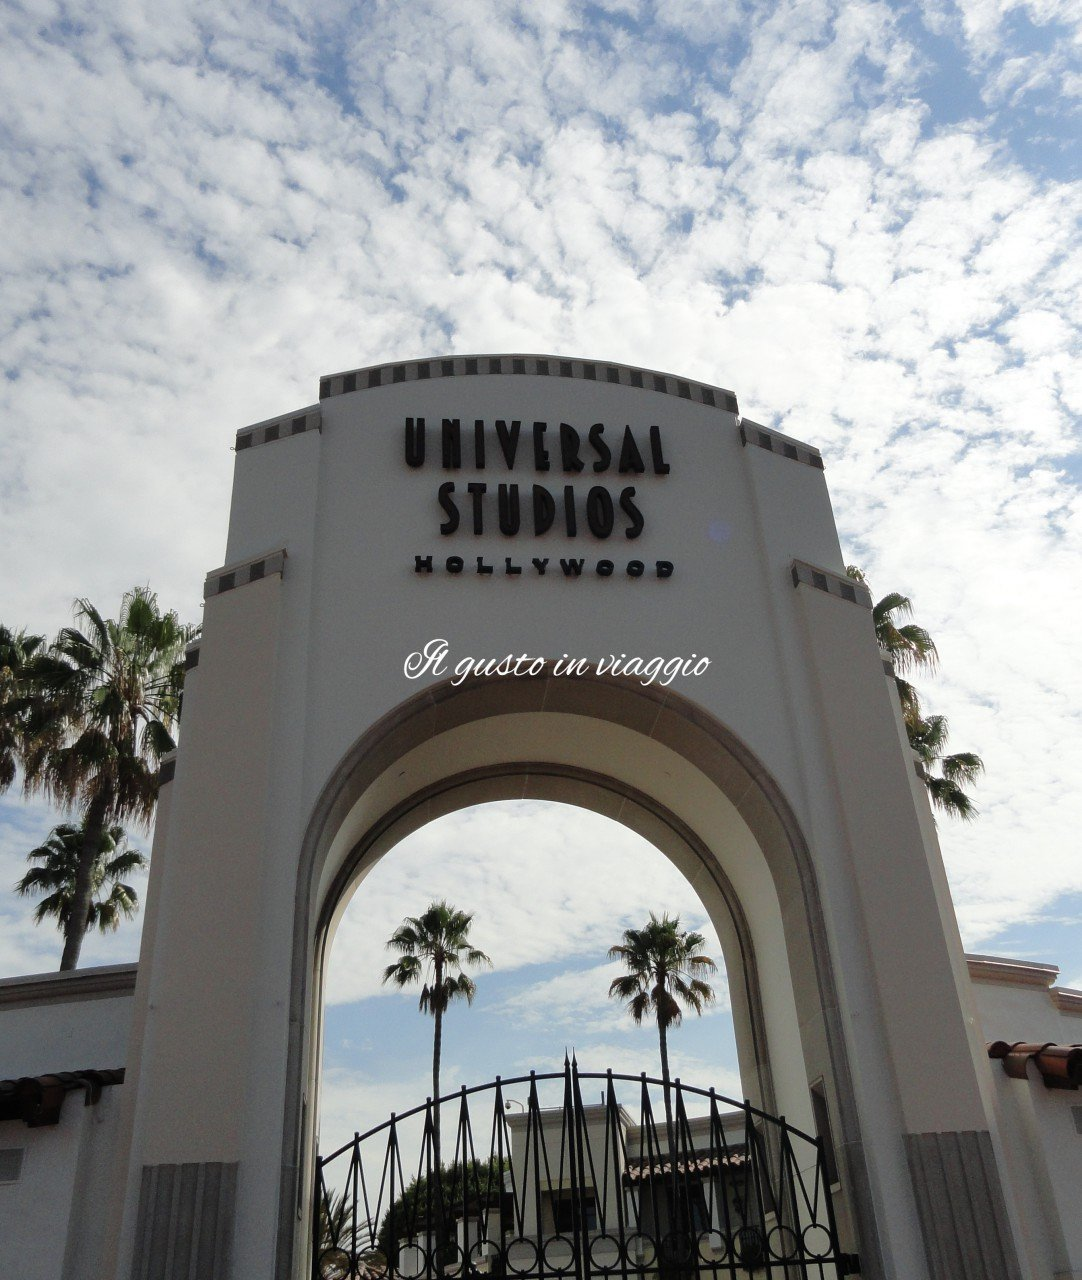 ingresso universal studios hollywood visitare gli universal studios los angeles